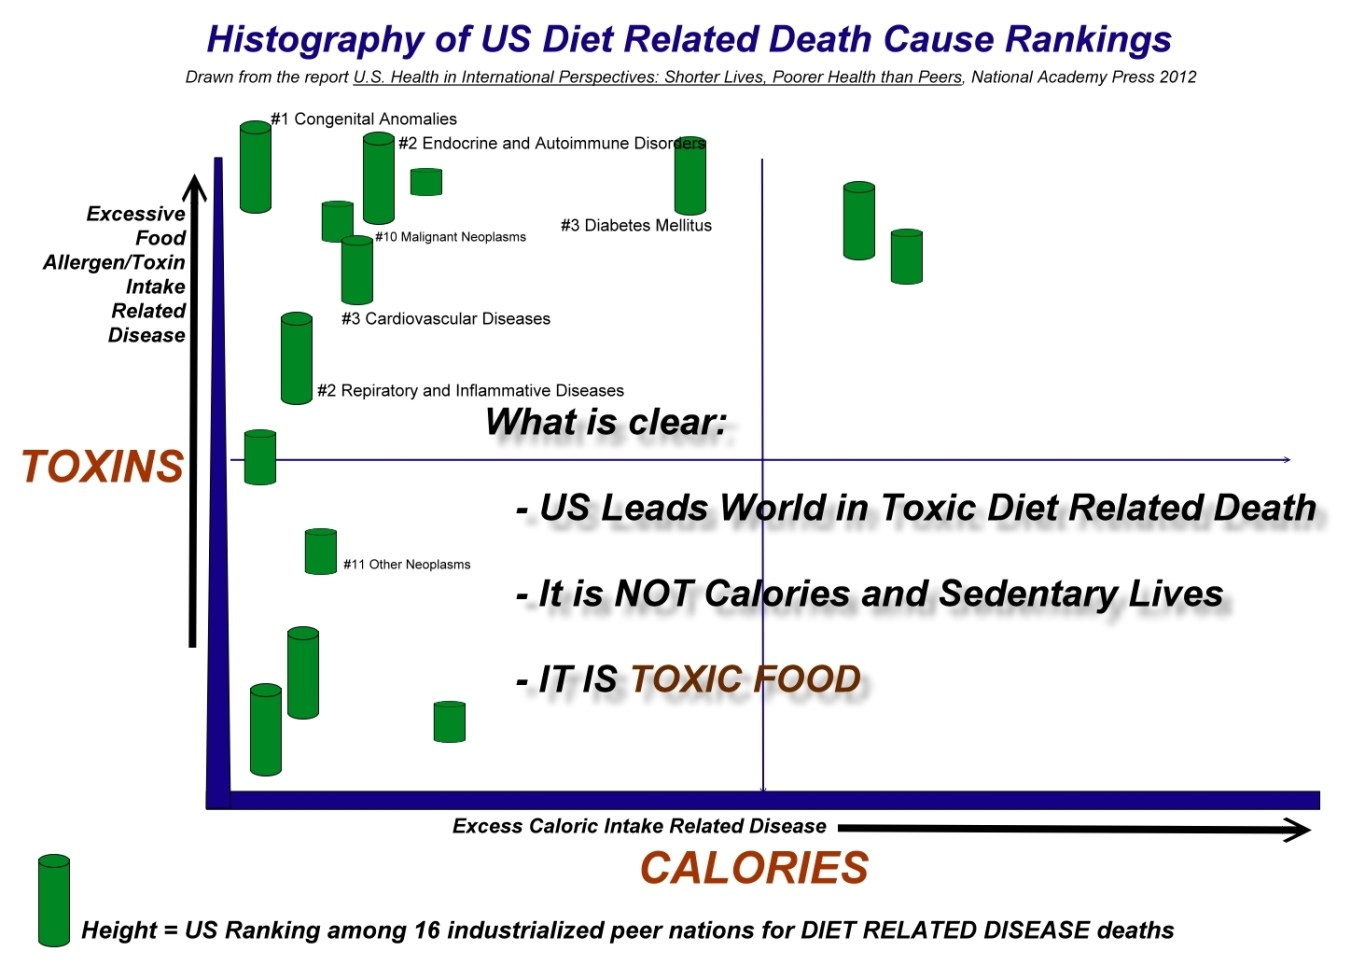 Toxic Diet Pushes US to Higher Diet Related Mortality Rate